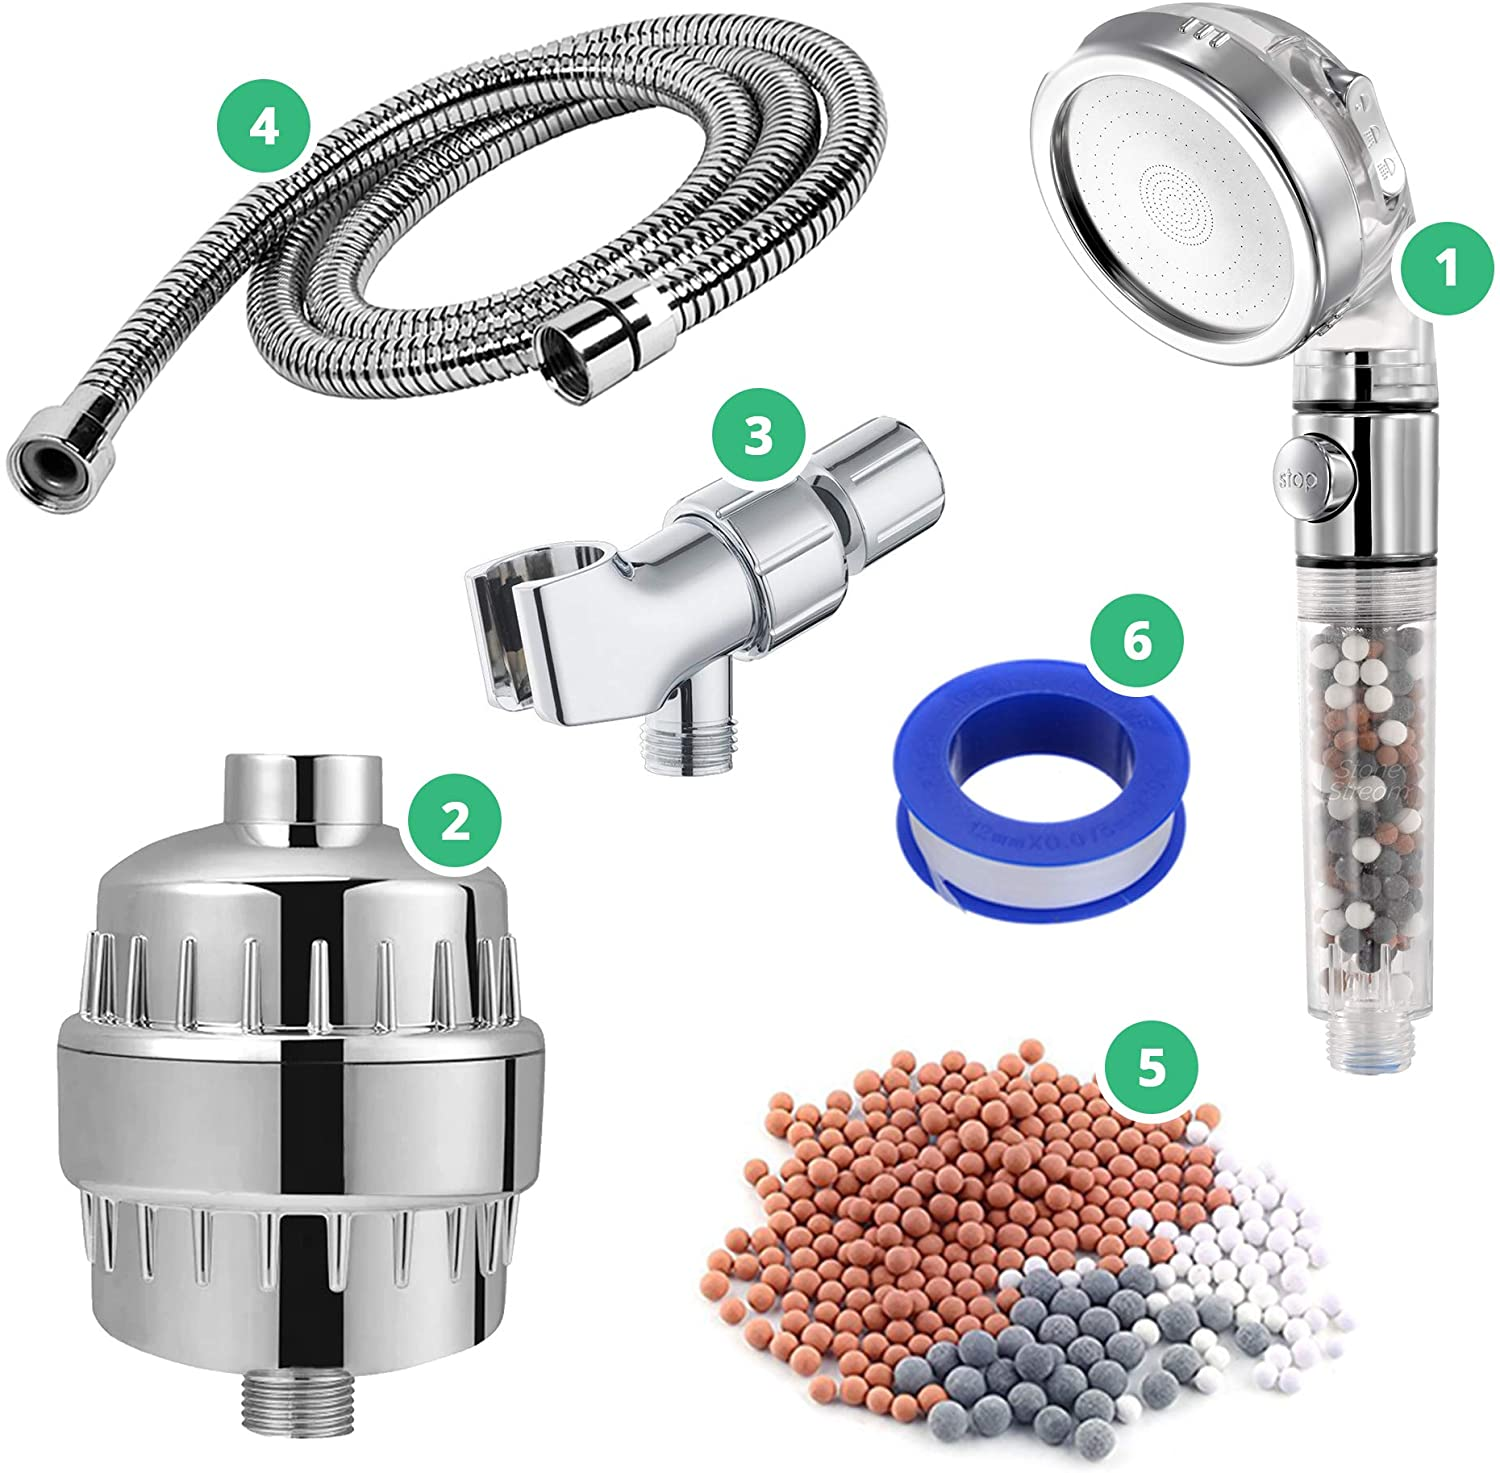 StoneStream EcoPower Shower Head System — Spa Like Ionic Filter to Soften Water, Increase Pressure & Save Water — Multi Function Showerhead + Hard Water Filtration + Adapter Kit